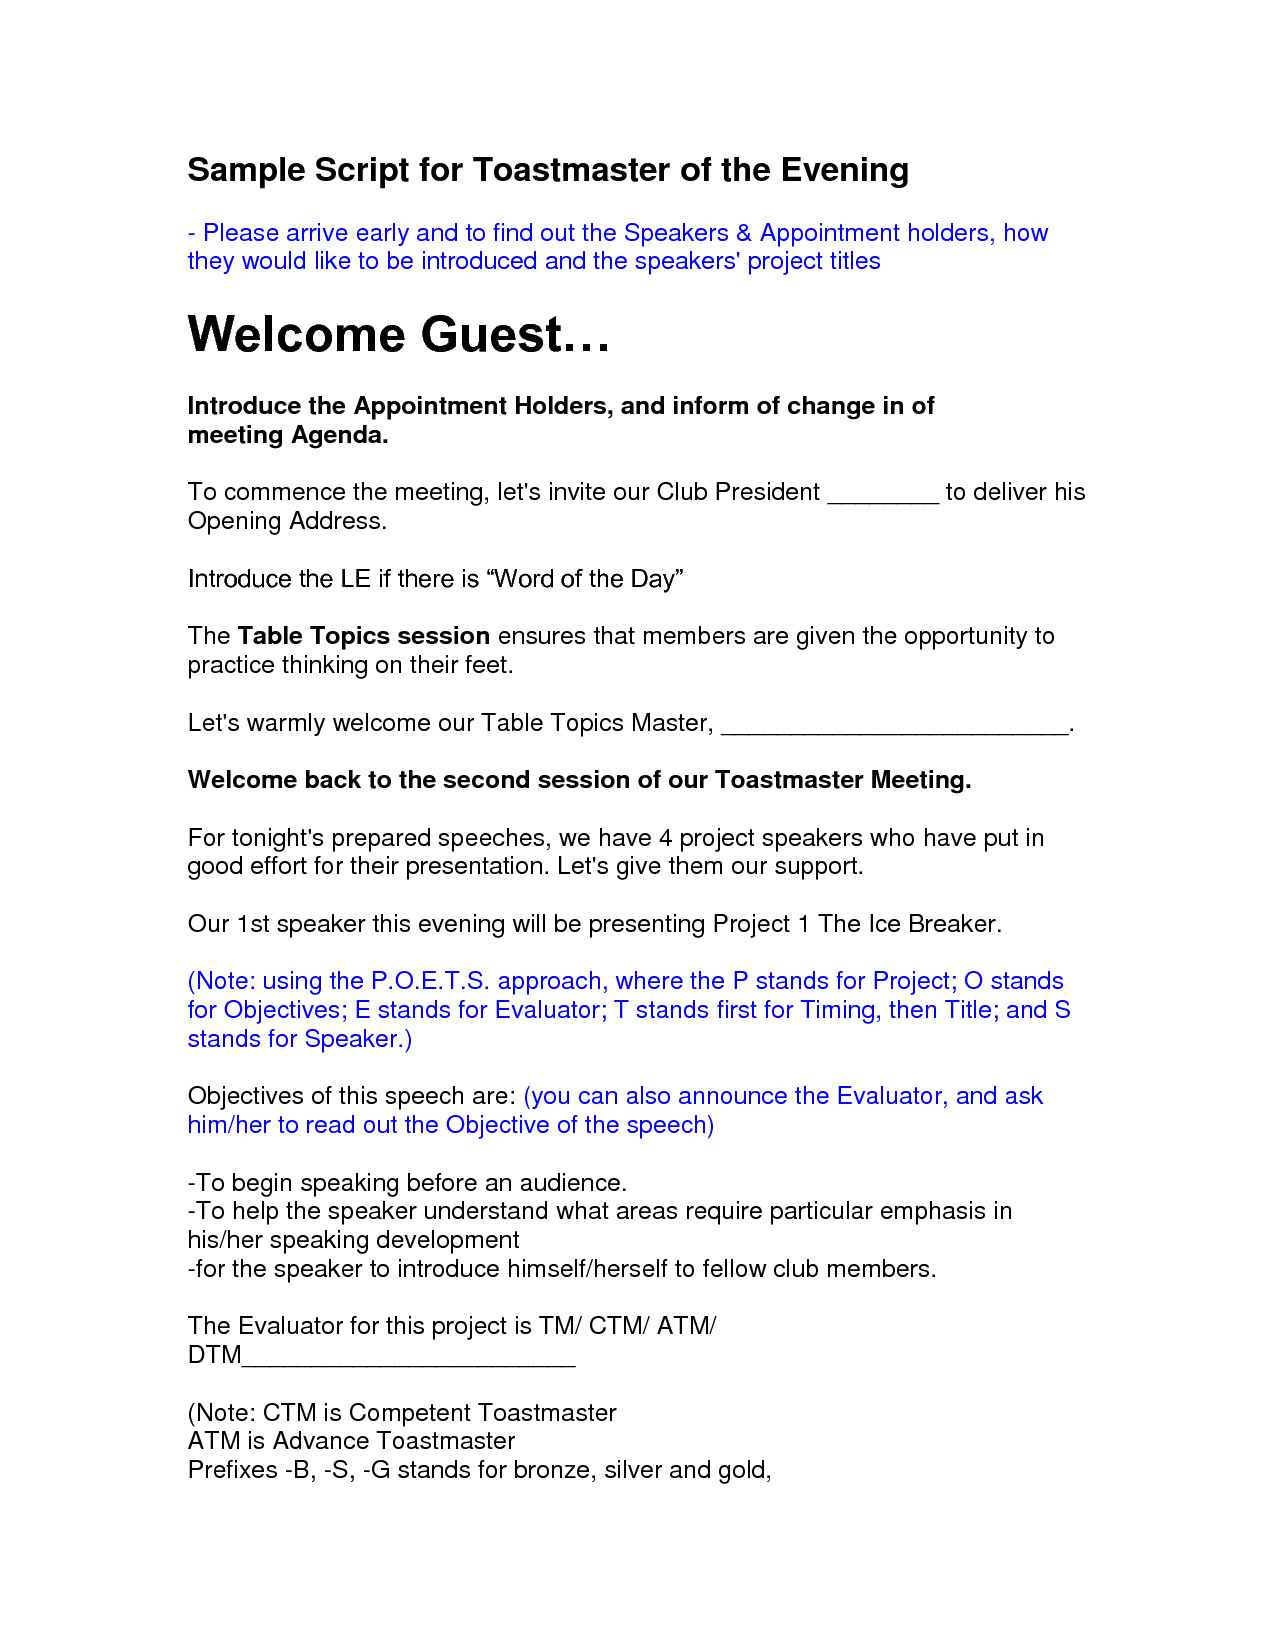 Introducing A Guest Speaker Template Best Photos Of Sample Guest Speaker Introductions